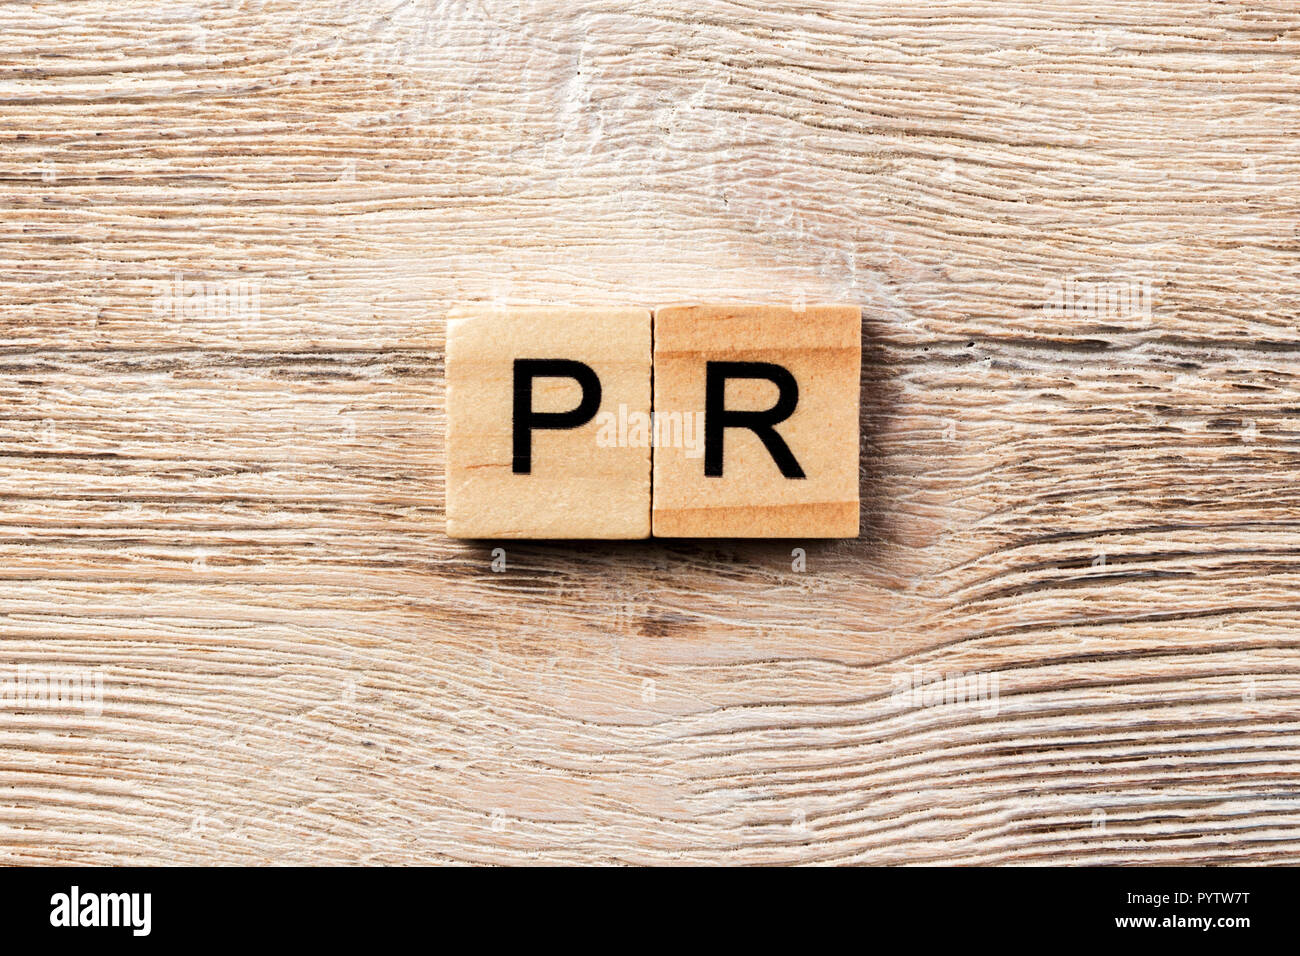 pr word written on wood block. public relation text on table, concept. Stock Photo